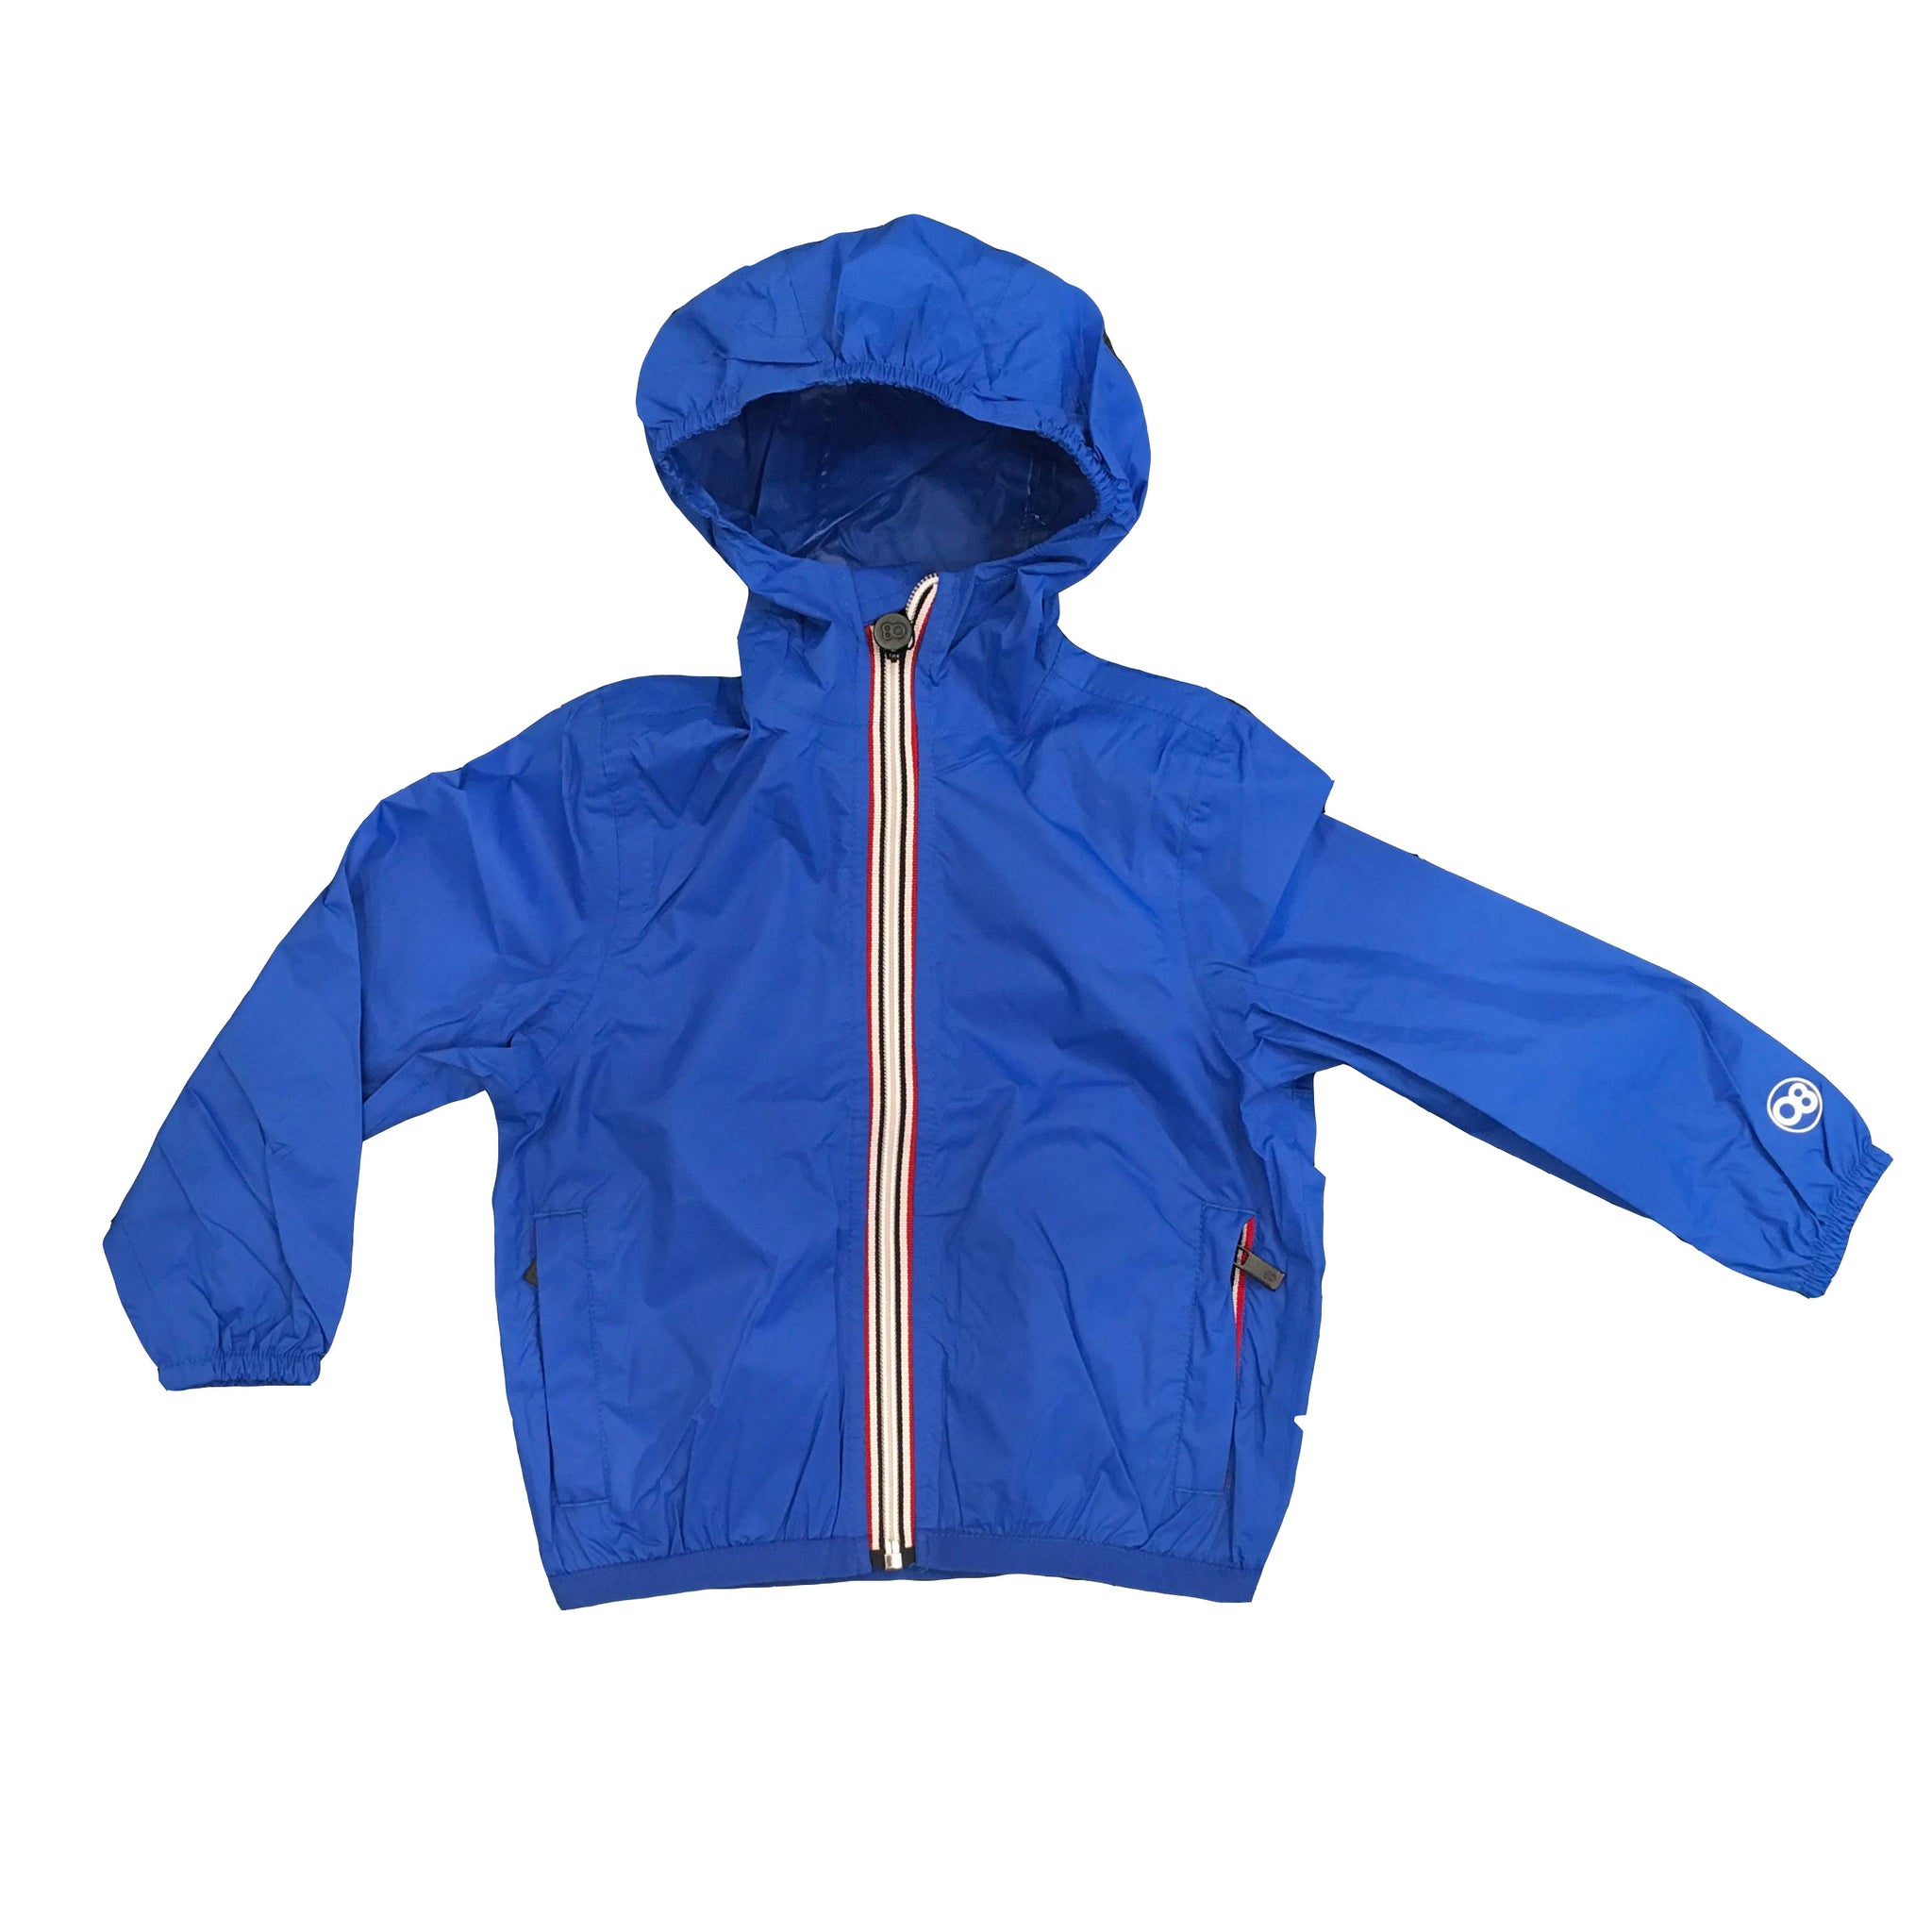 f6dd423c1b8fb Impermeable waterproof jacket manteau coupe-vent enfant empaquetable.  Impermeable waterproof jacket manteau coupe-vent enfant empaquetable